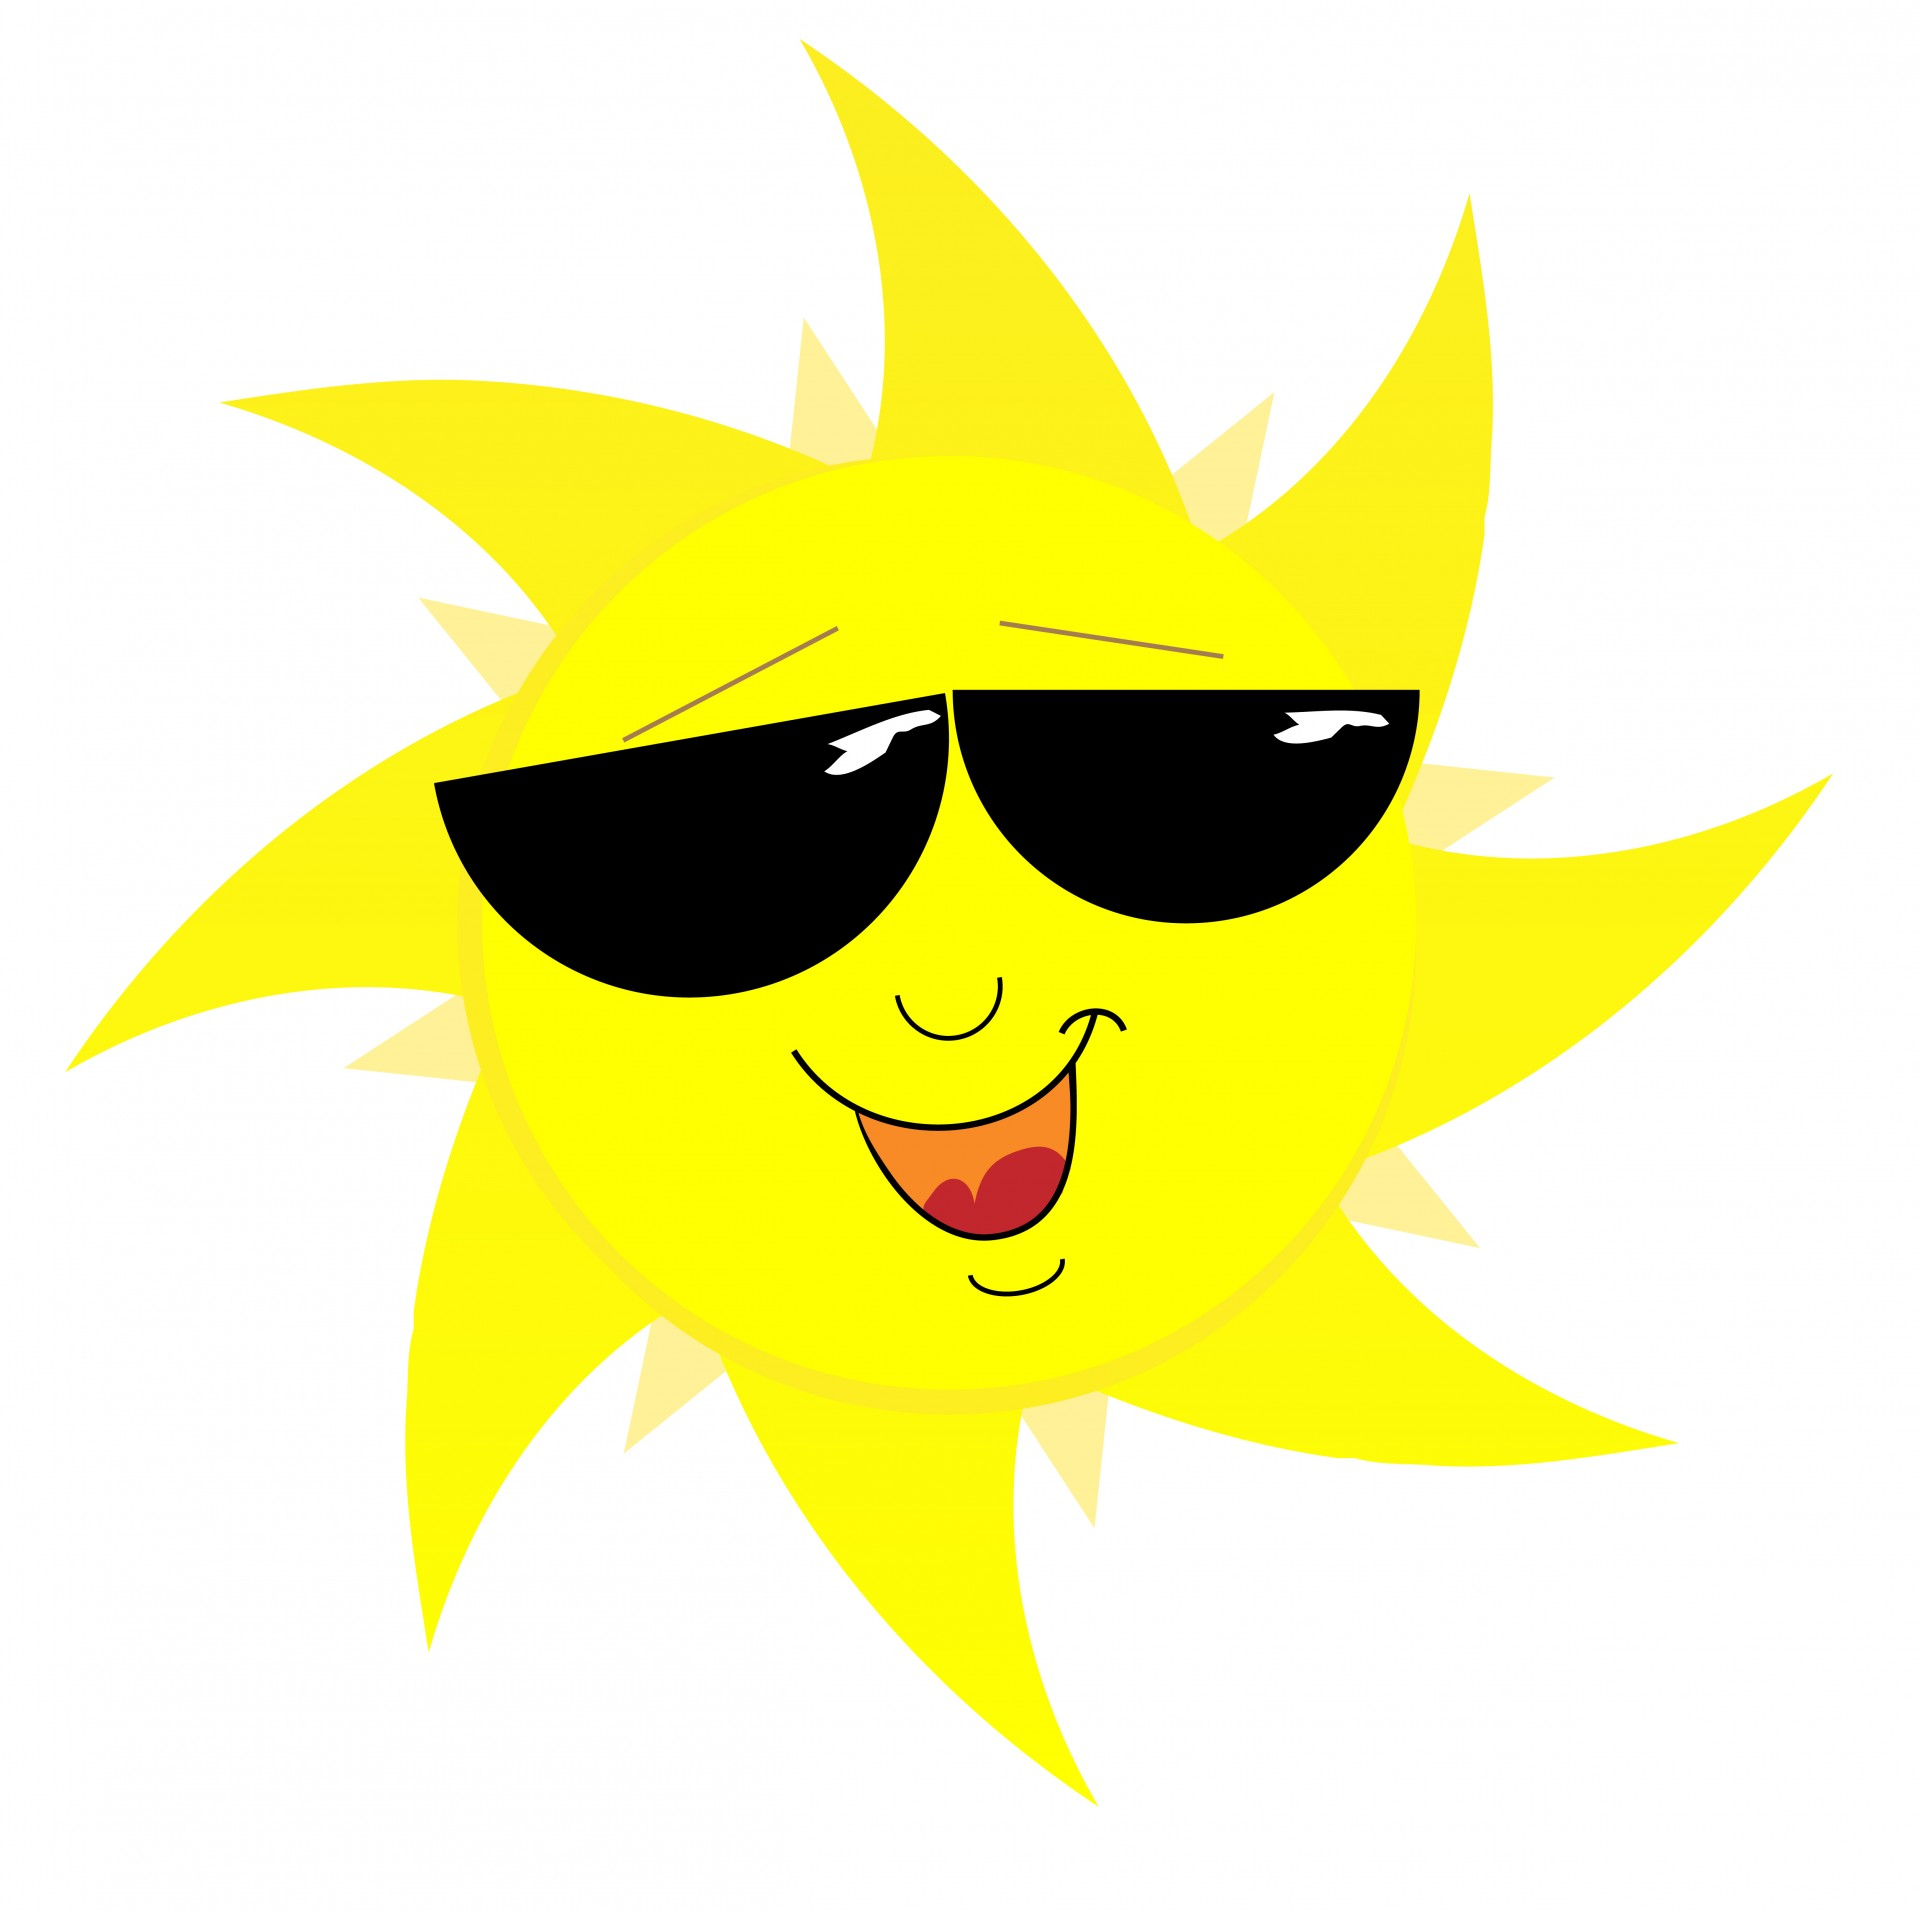 Smiling Sun Face In Sunglasses Free Stock Photo.